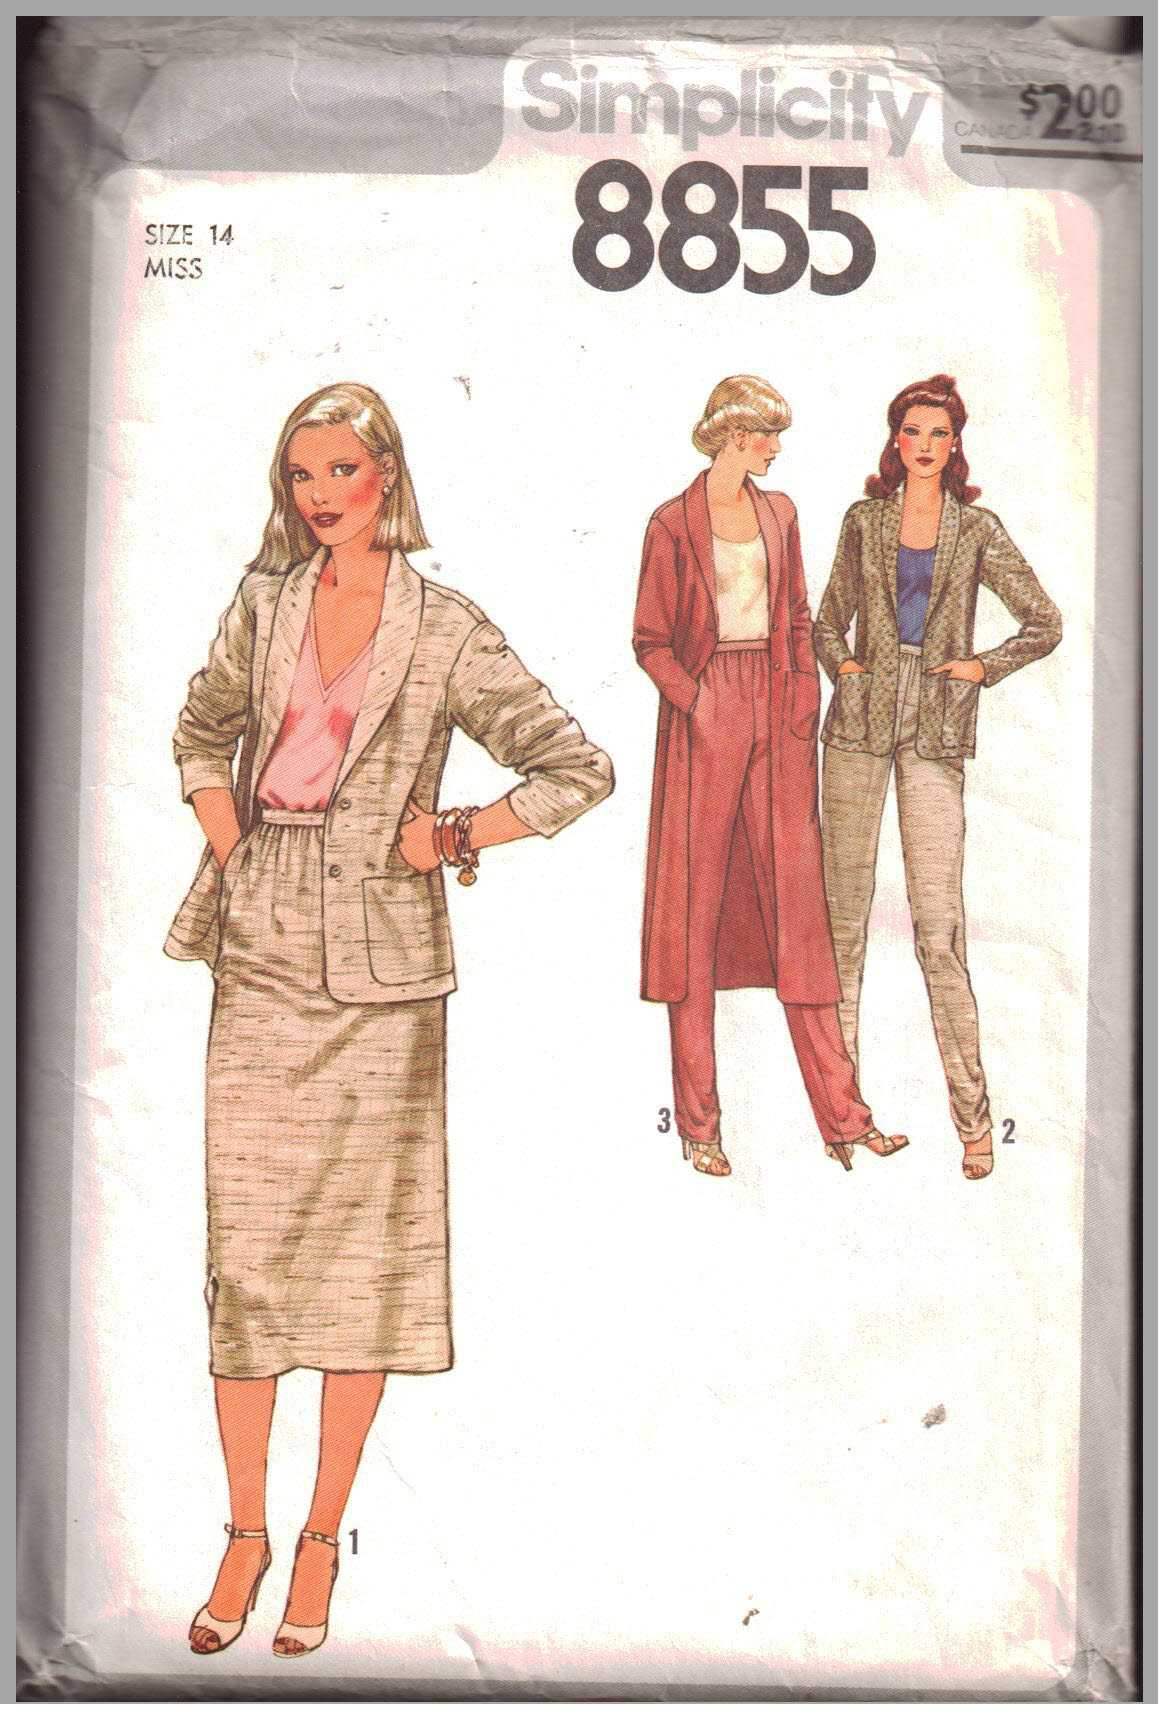 64b35dbde8ea Products Archive - Page 461 of 469 - Pattern-Walk